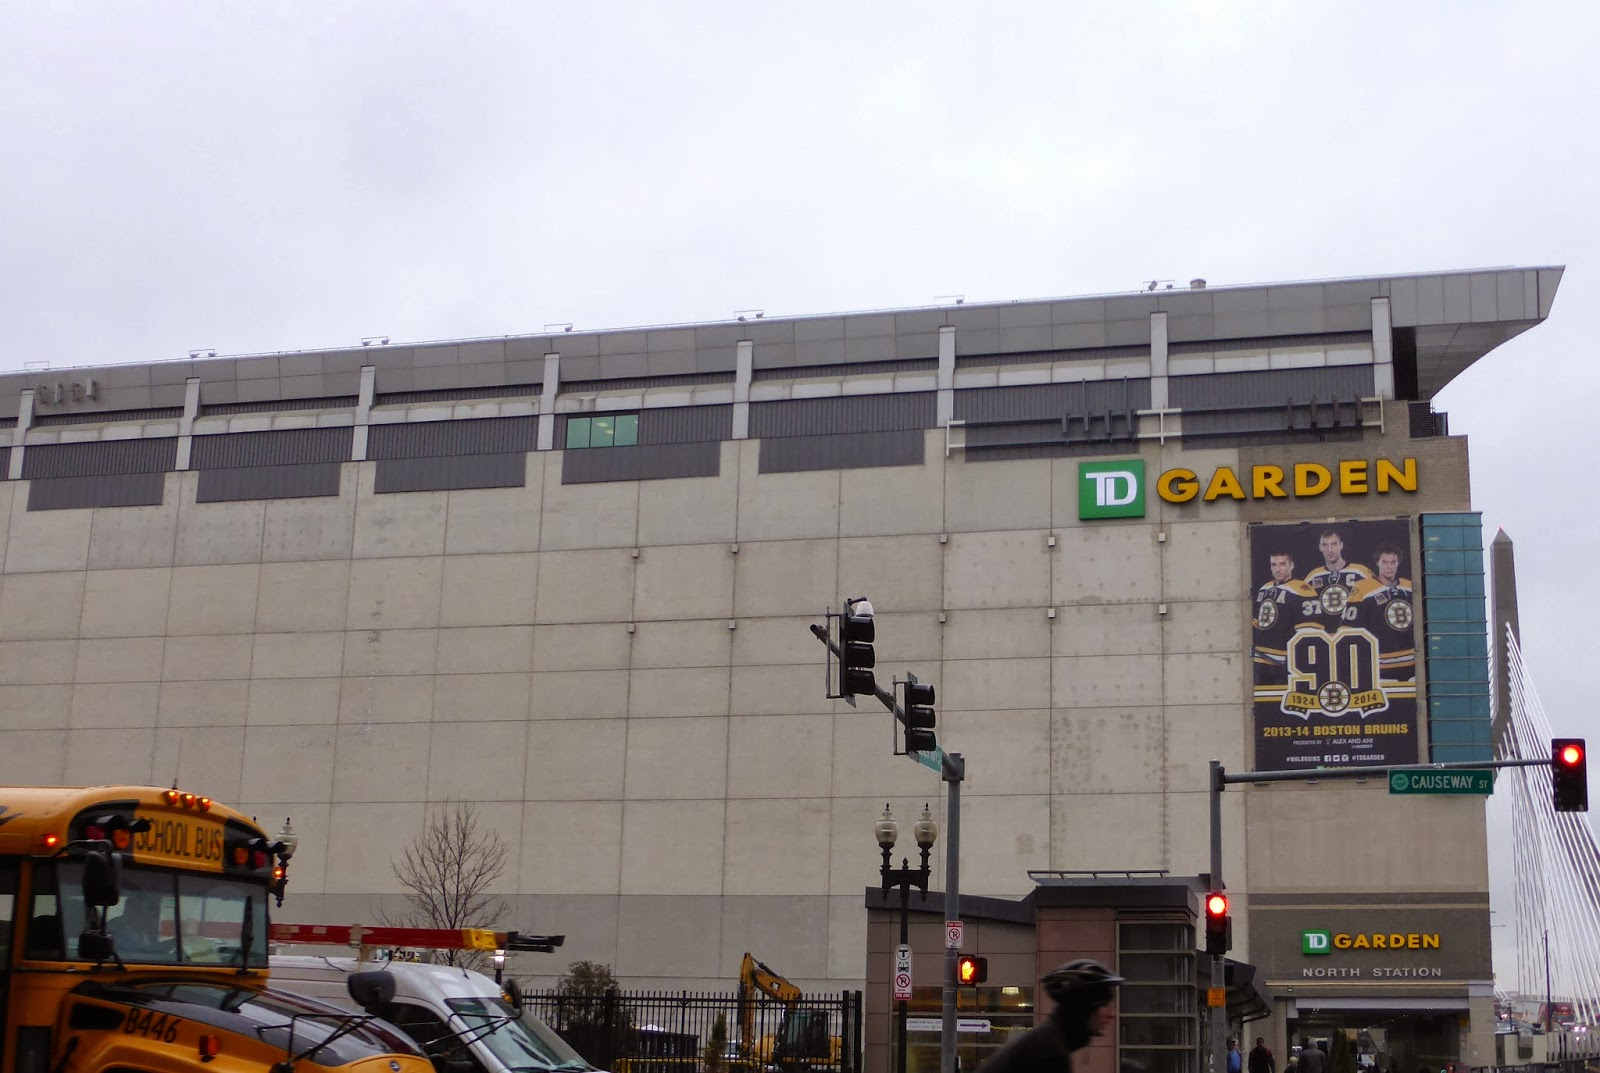 city guide office of itinerant boston scoreboard the hockey state box td garden img fan